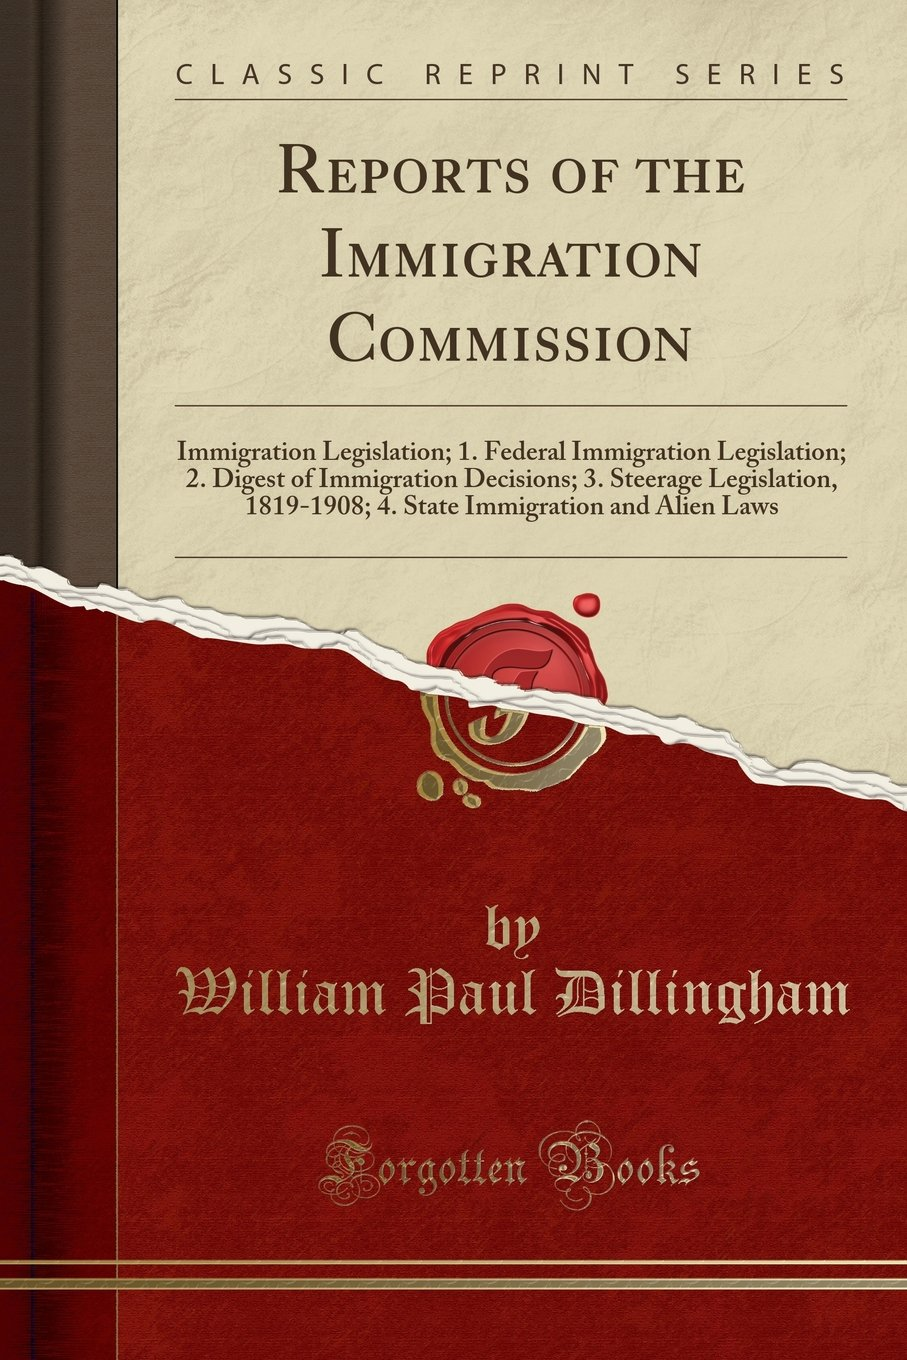 Reports of the Immigration Commission: Immigration Legislation; 1. Federal Immigration Legislation; 2. Digest of Immigration Decisions; 3. Steerage ... Immigration and Alien Laws (Classic Reprint) ebook